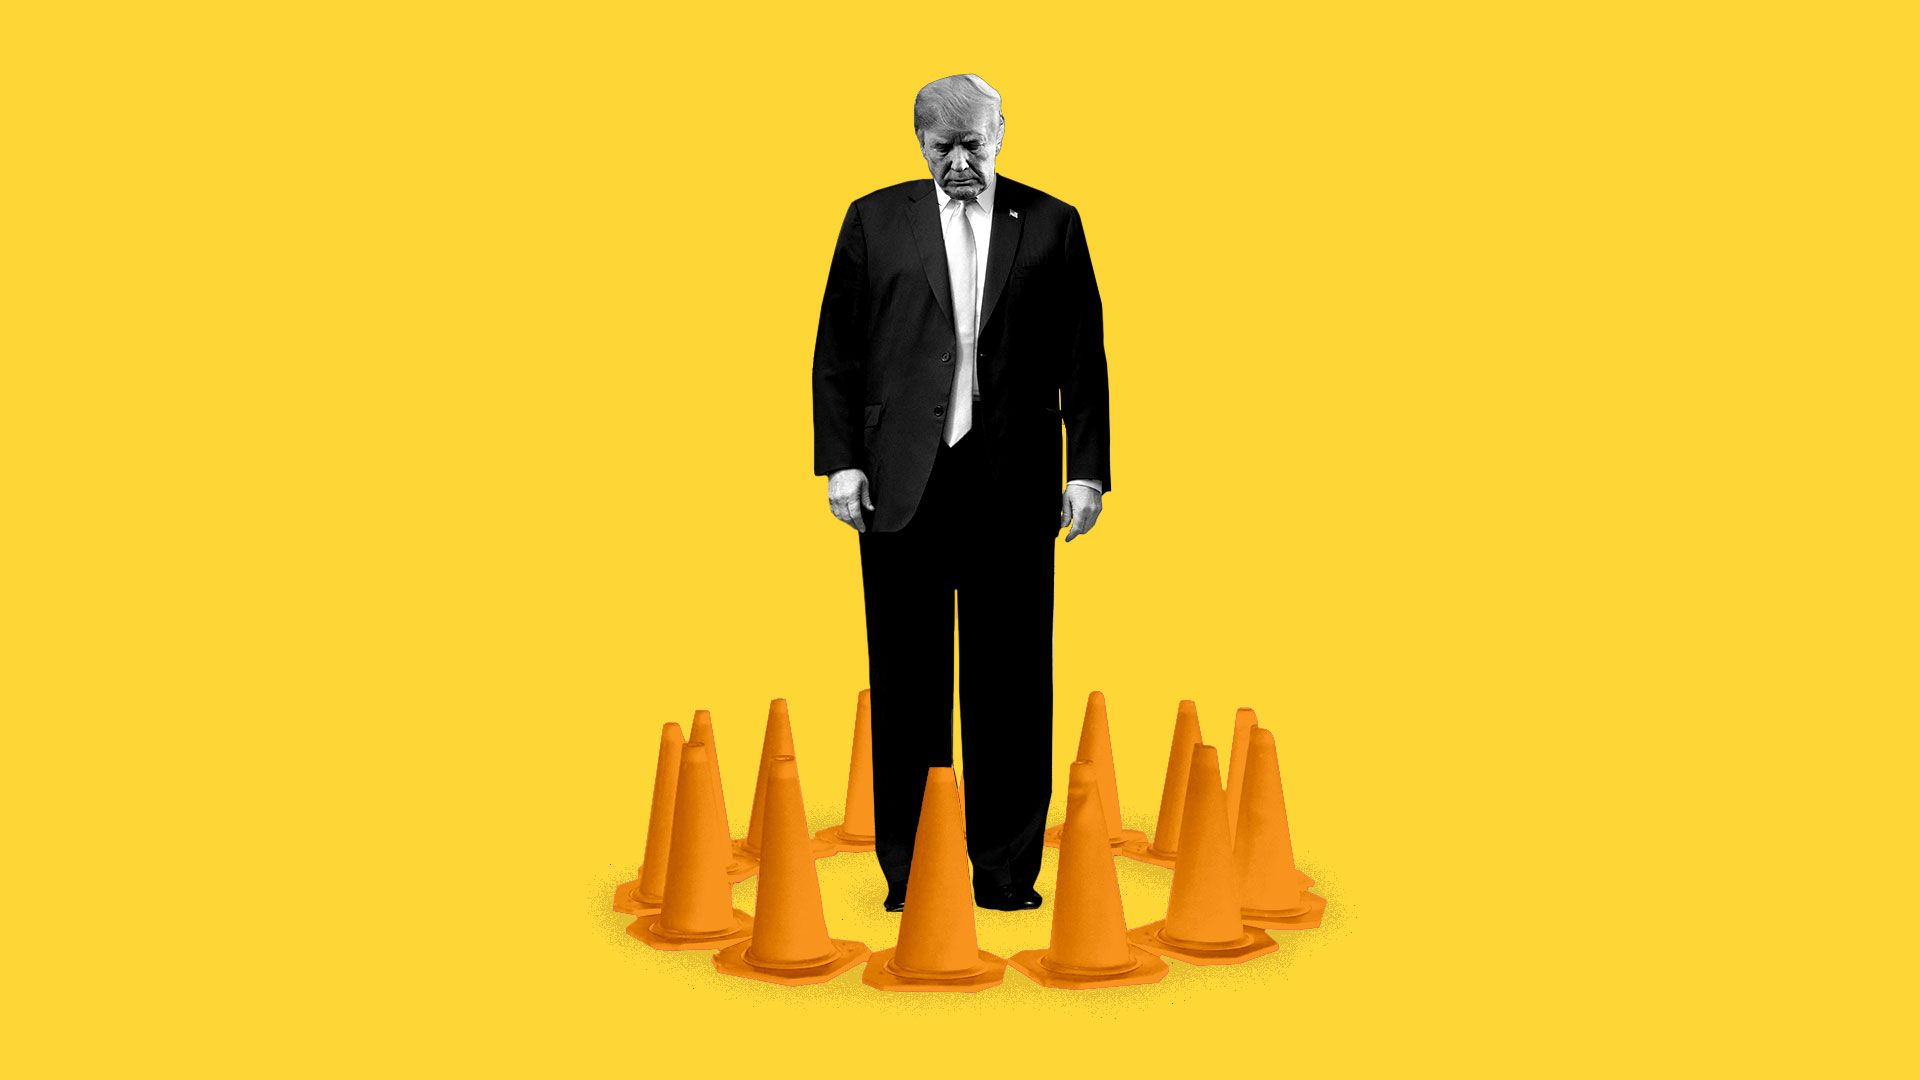 Illustration of President Trump surrounded by traffic cones.